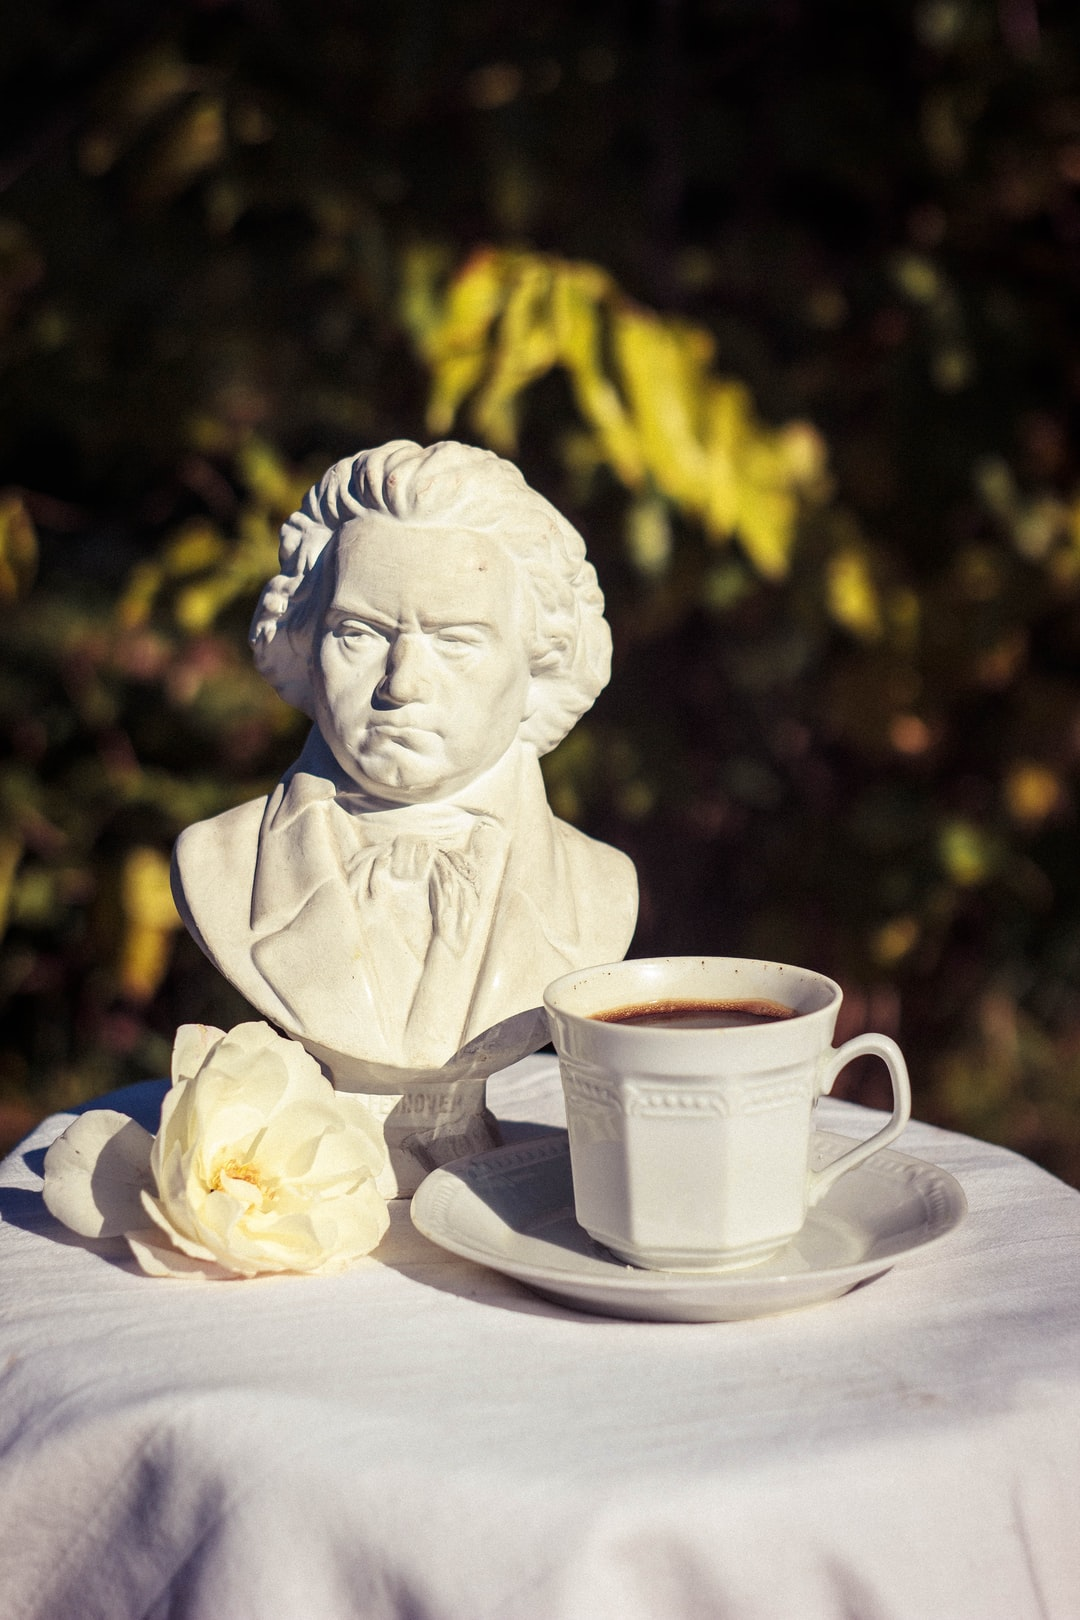 Morning Coffee and the bust of Ludwig van Beethoven (1770 – 1827), who was a German composer and pianist; his music is amongst the most performed of the classical music repertoire.